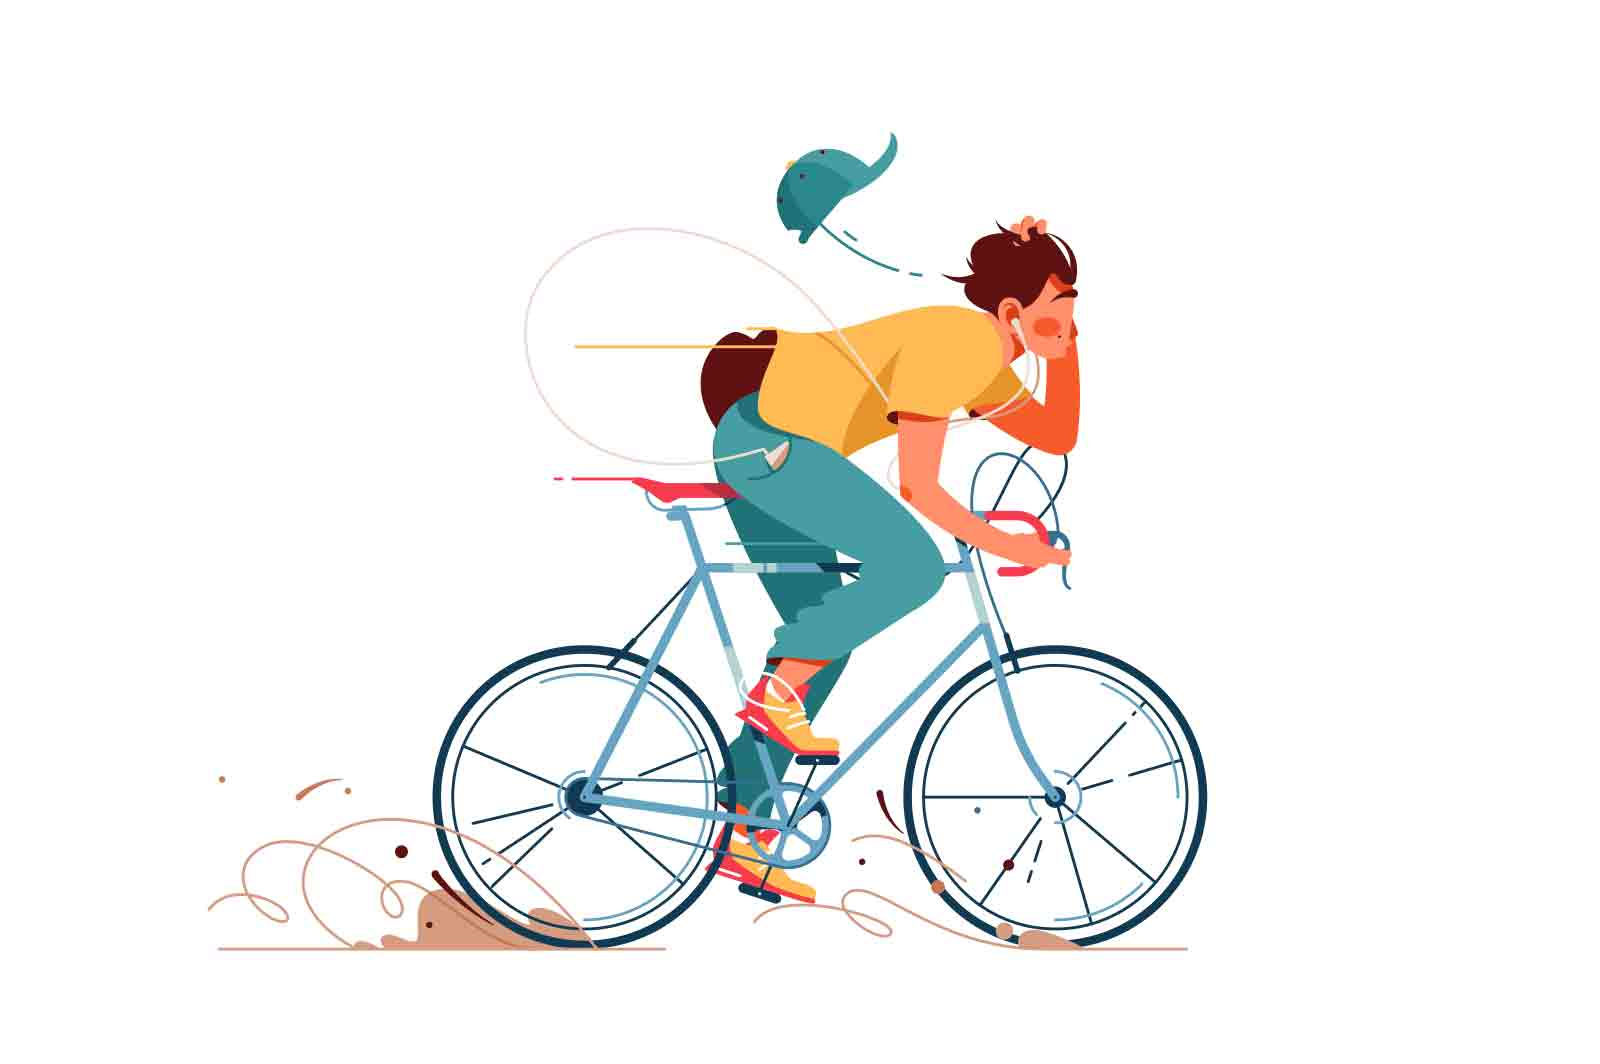 Young man rides bicycle animation. After Effects animation source files. Activity and healthy lifestyle concept.